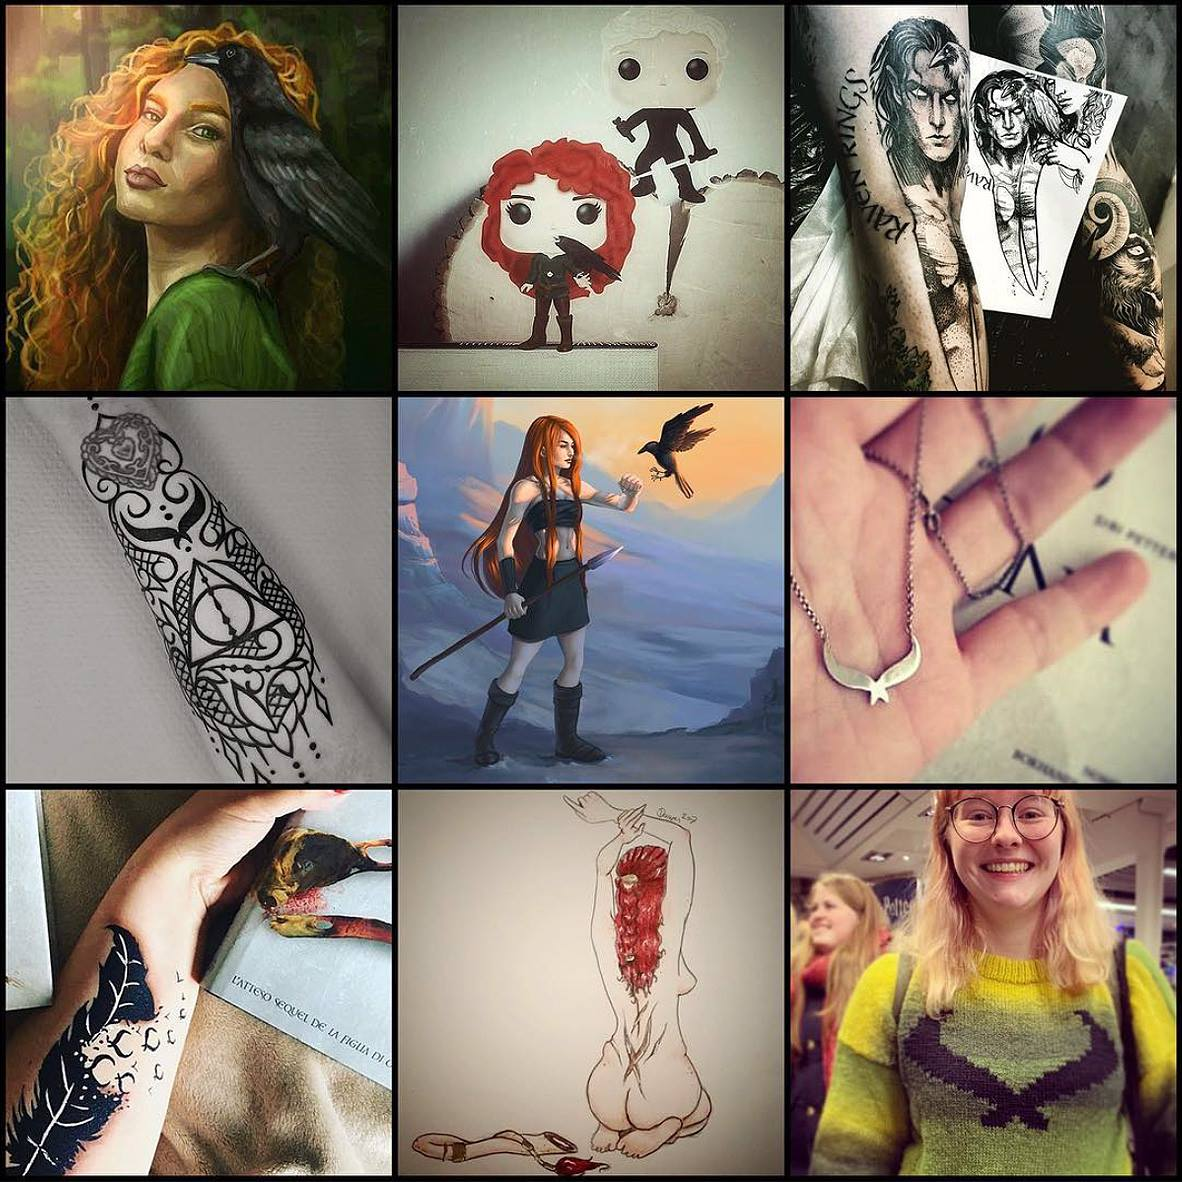 Collage: Nice most loved pieces of fanart